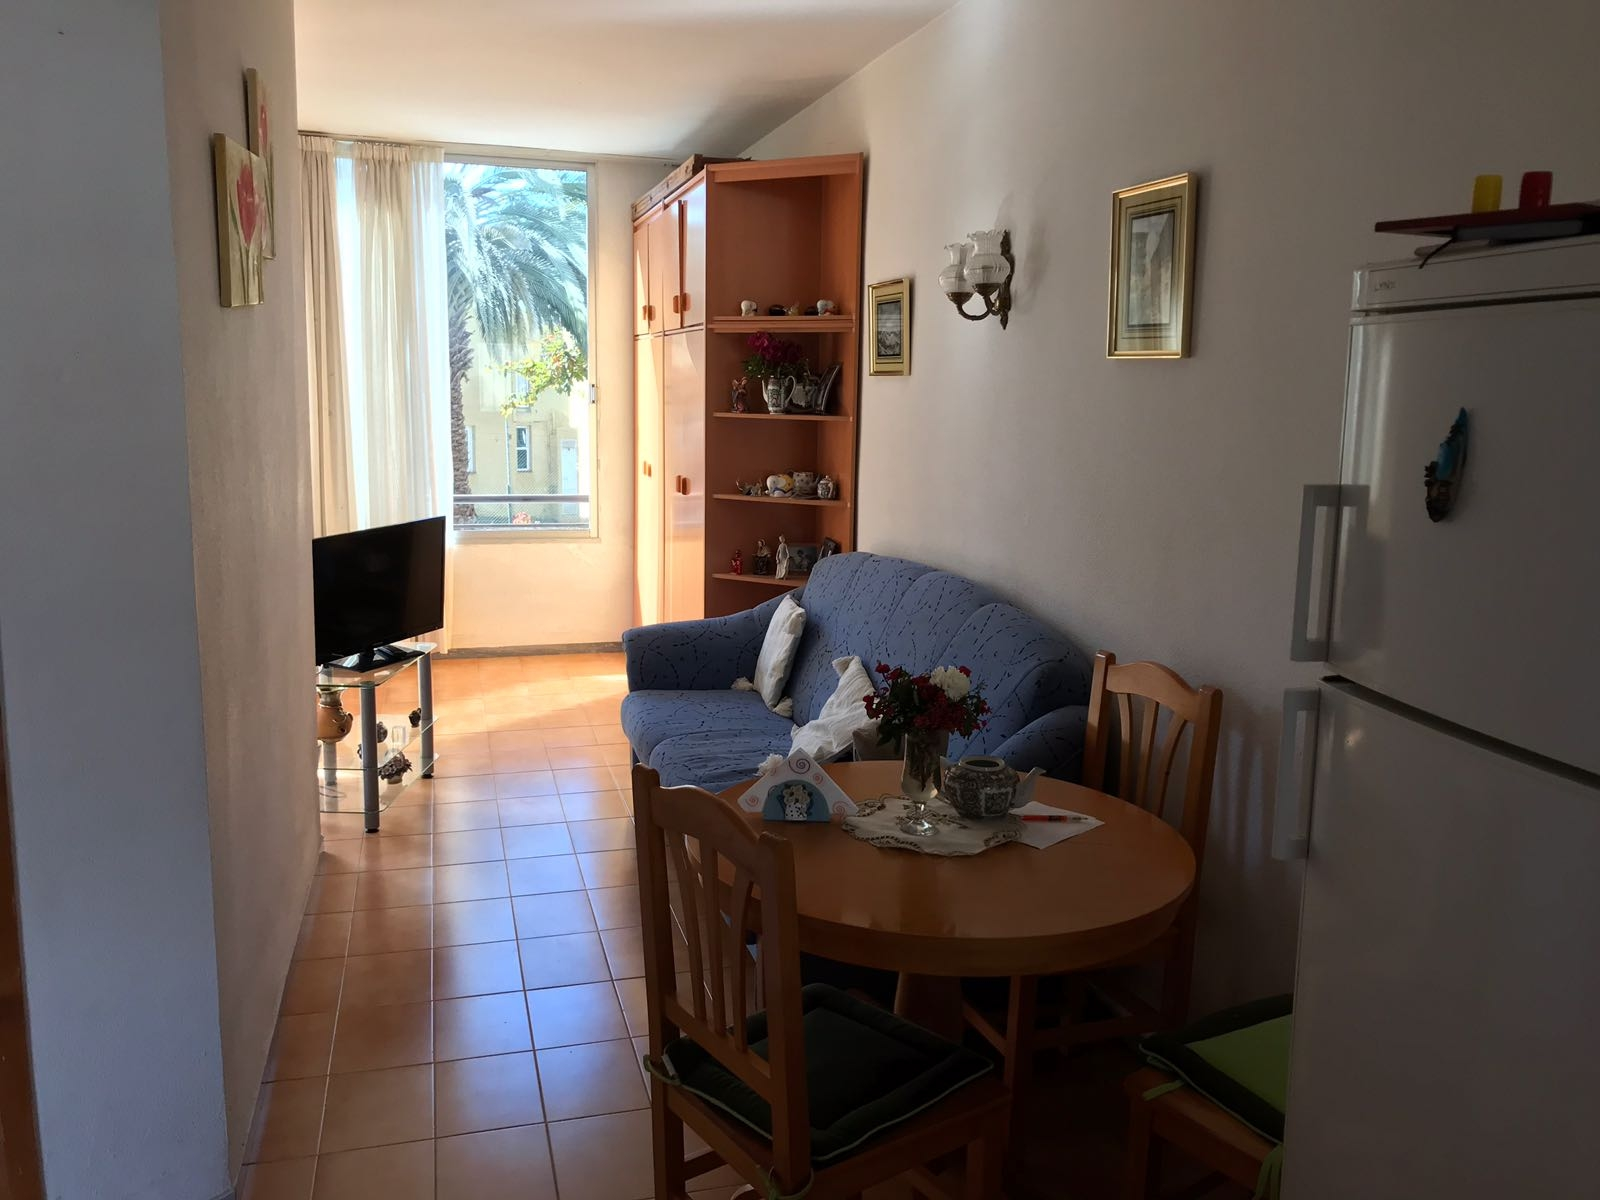 Properties for Sale in Tenerife, Canary Islands, Spain | SylkWayStar Real Estate. 1 Bedroom apartment Los Agaves. Image-22273